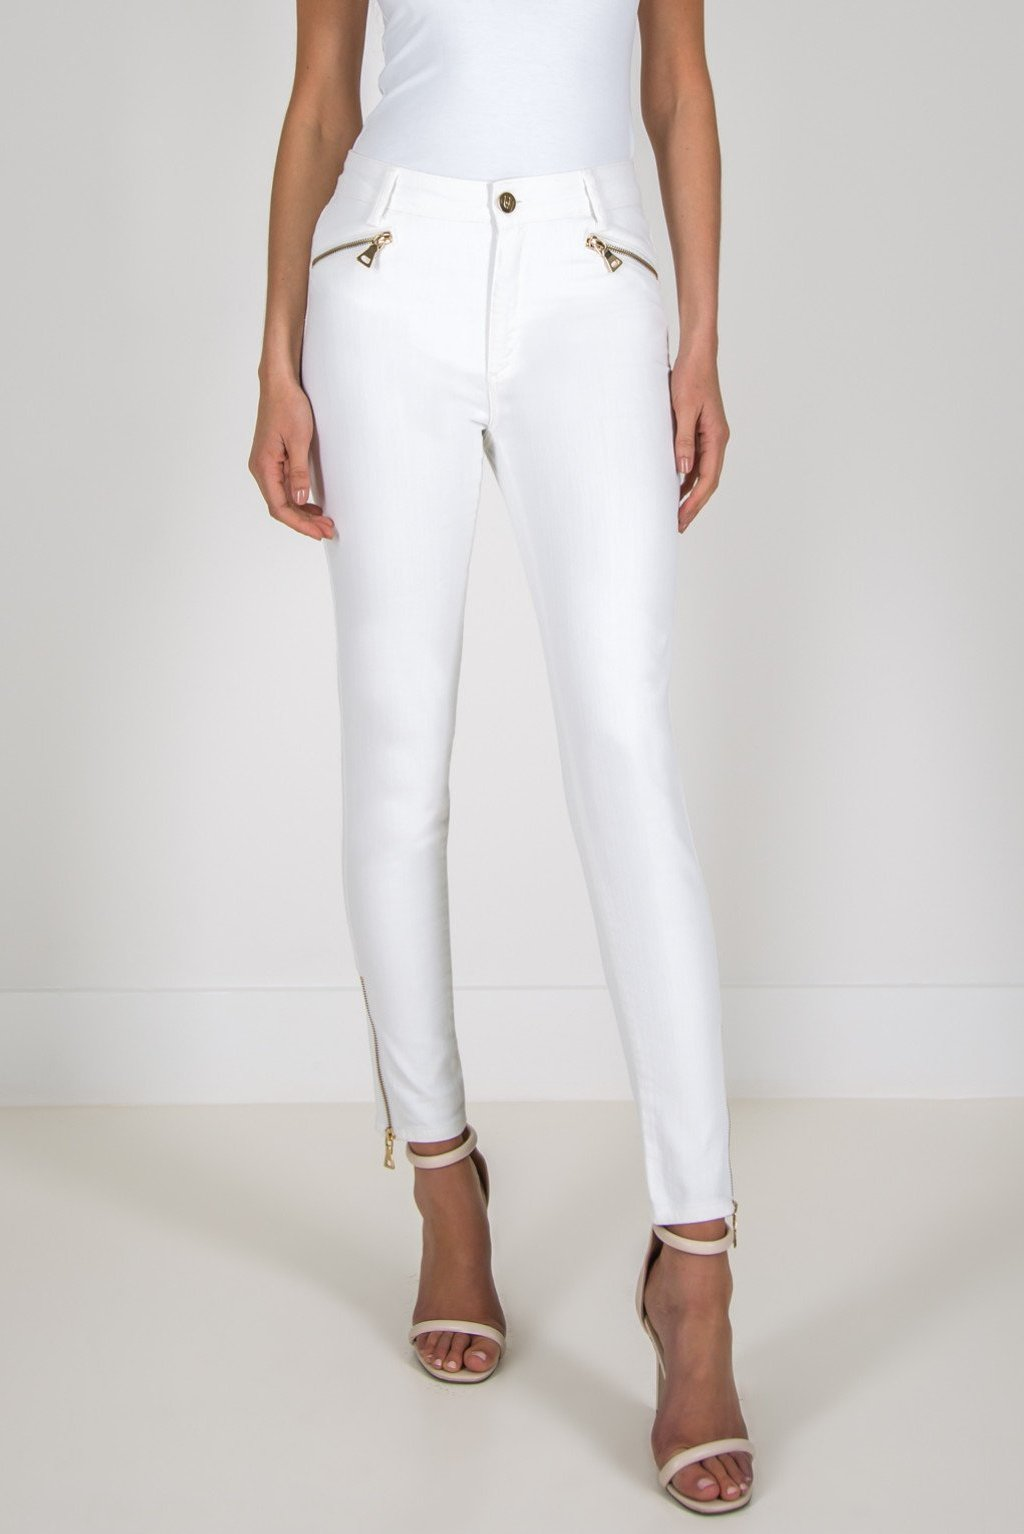 FOREVER UNIQUE GAIL SKINNY JEANS - WHITE